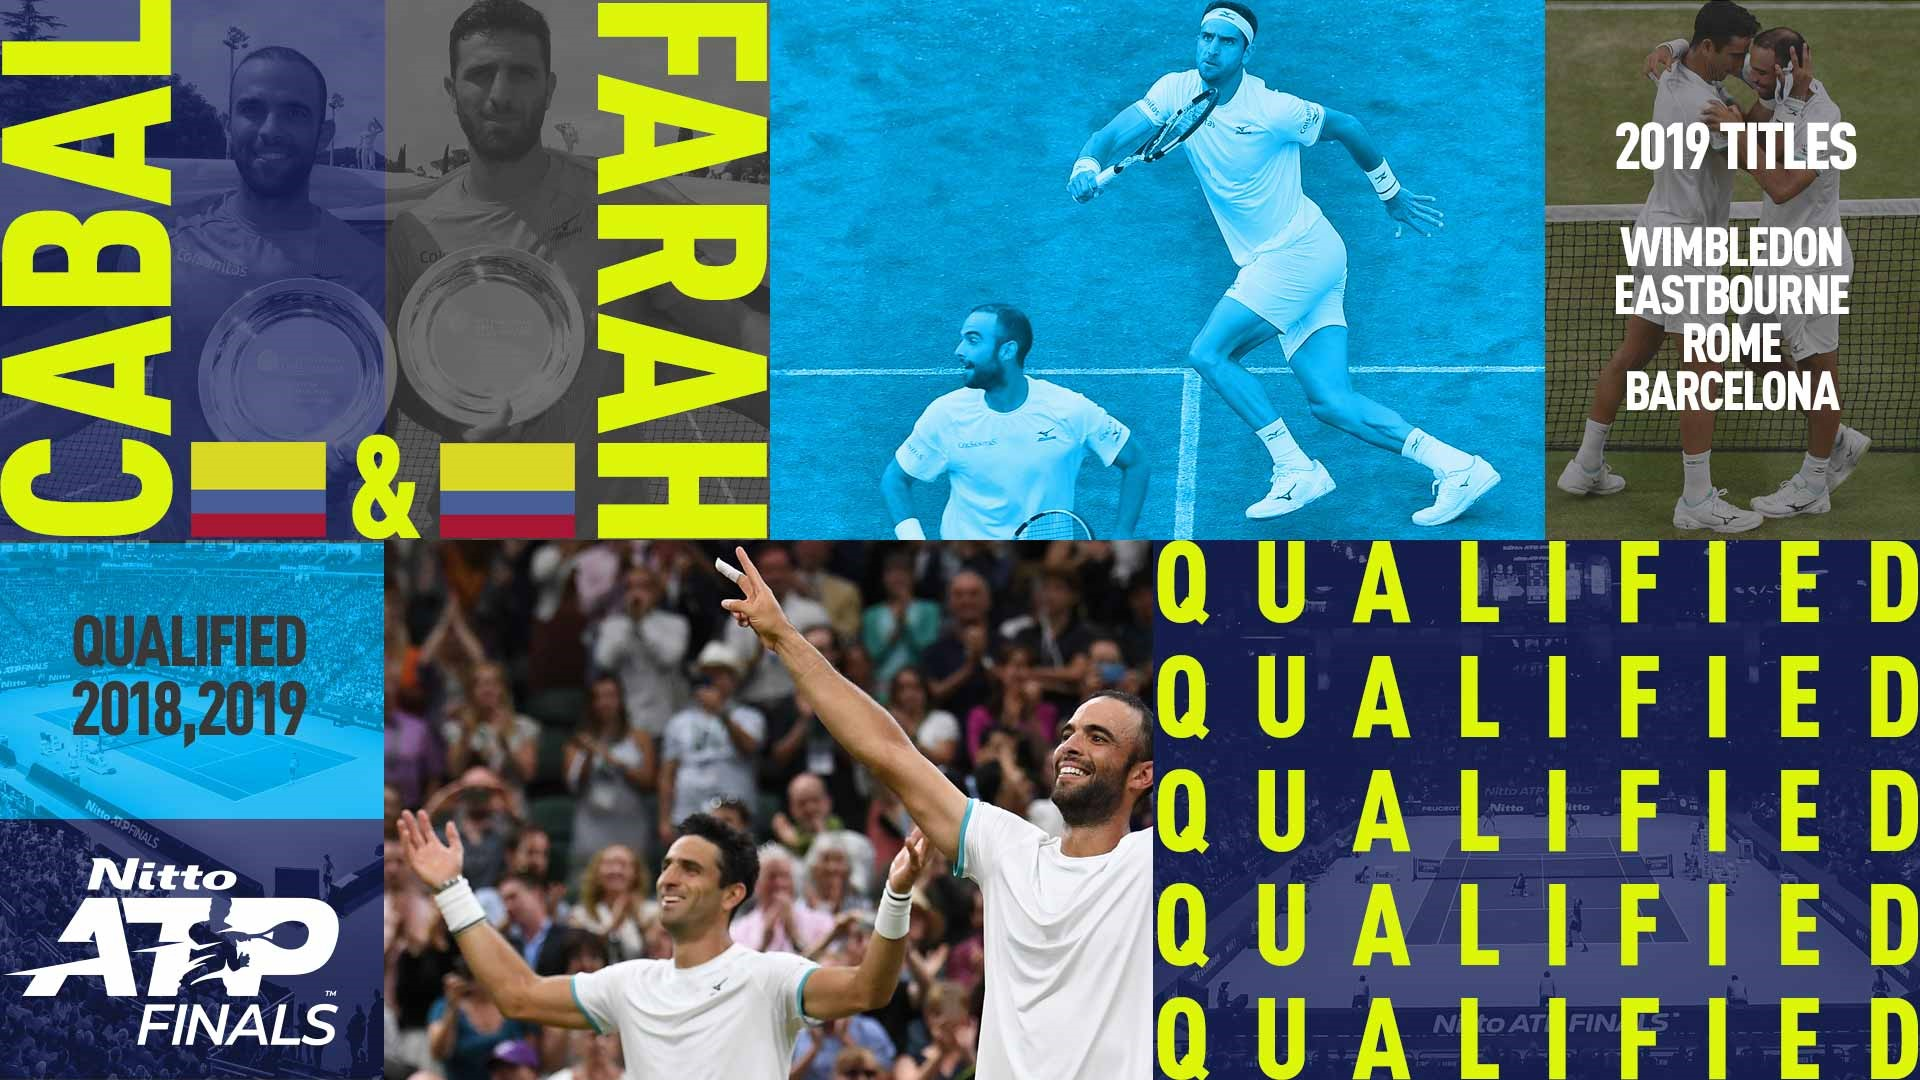 <a href='/en/players/juan-sebastian-cabal/c834/overview'>Juan Sebastian Cabal</a> and <a href='/en/players/robert-farah/f525/overview'>Robert Farah</a> have qualified for the <a href='/en/tournaments/nitto-atp-finals/605/overview'>Nitto ATP Finals</a> for the second consecutive year.